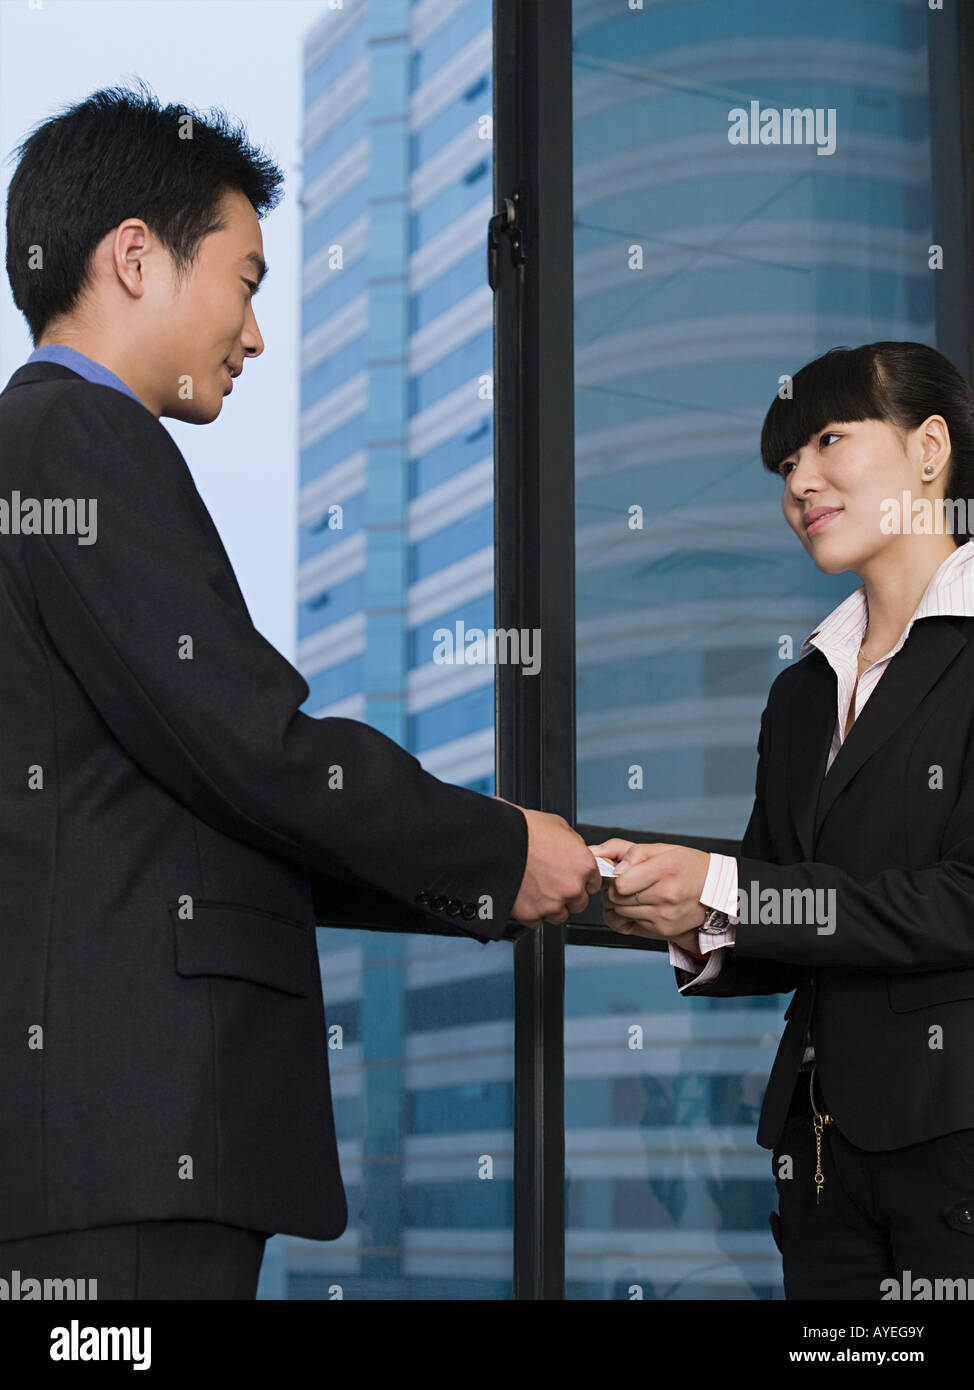 Business people with business card - Stock Image